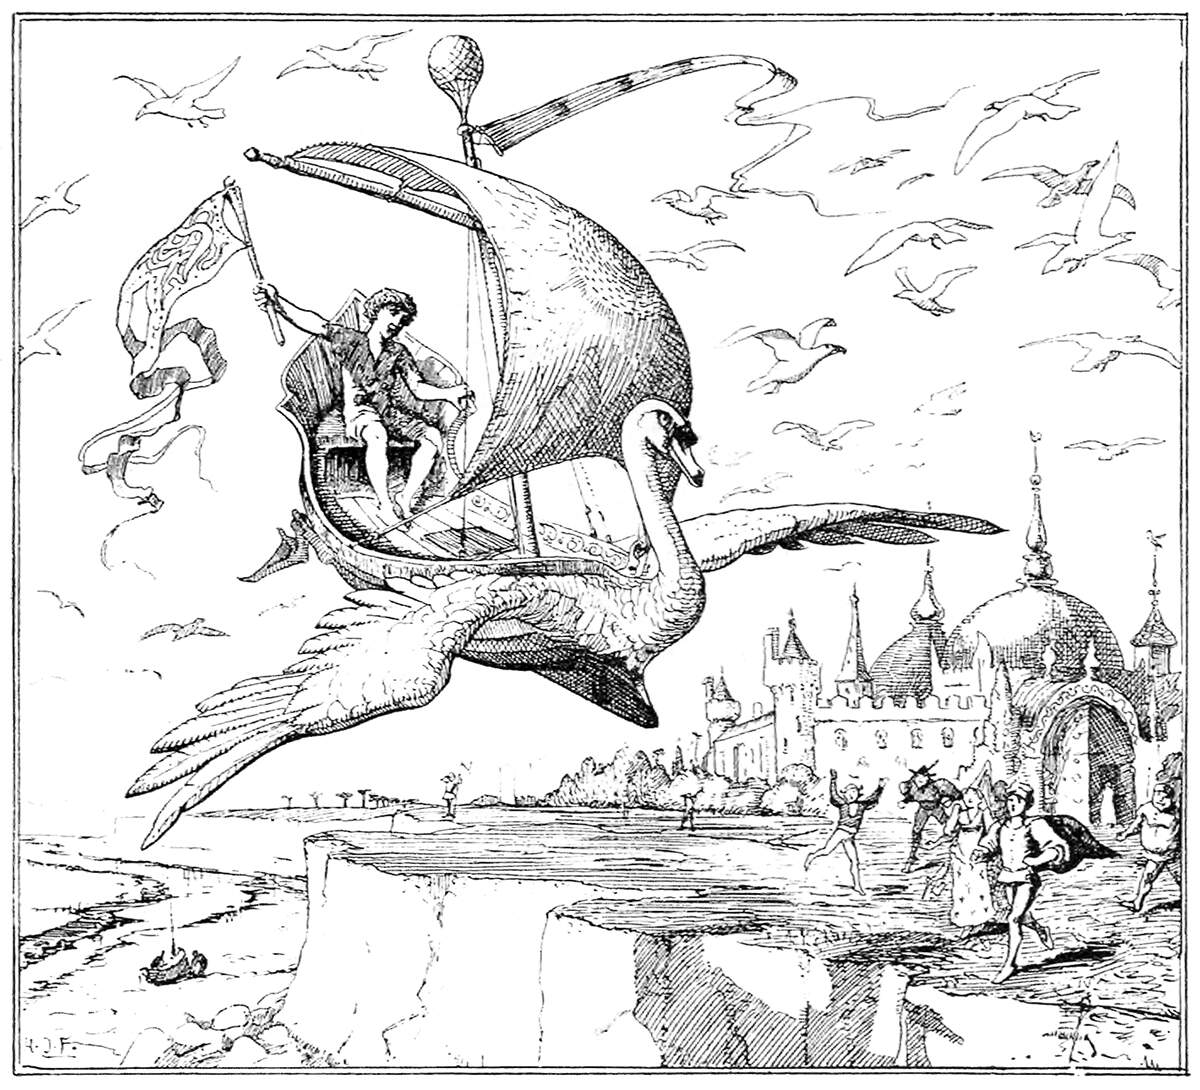 1200x1090 Public Domain Illustrations From Old Books Boing Boing